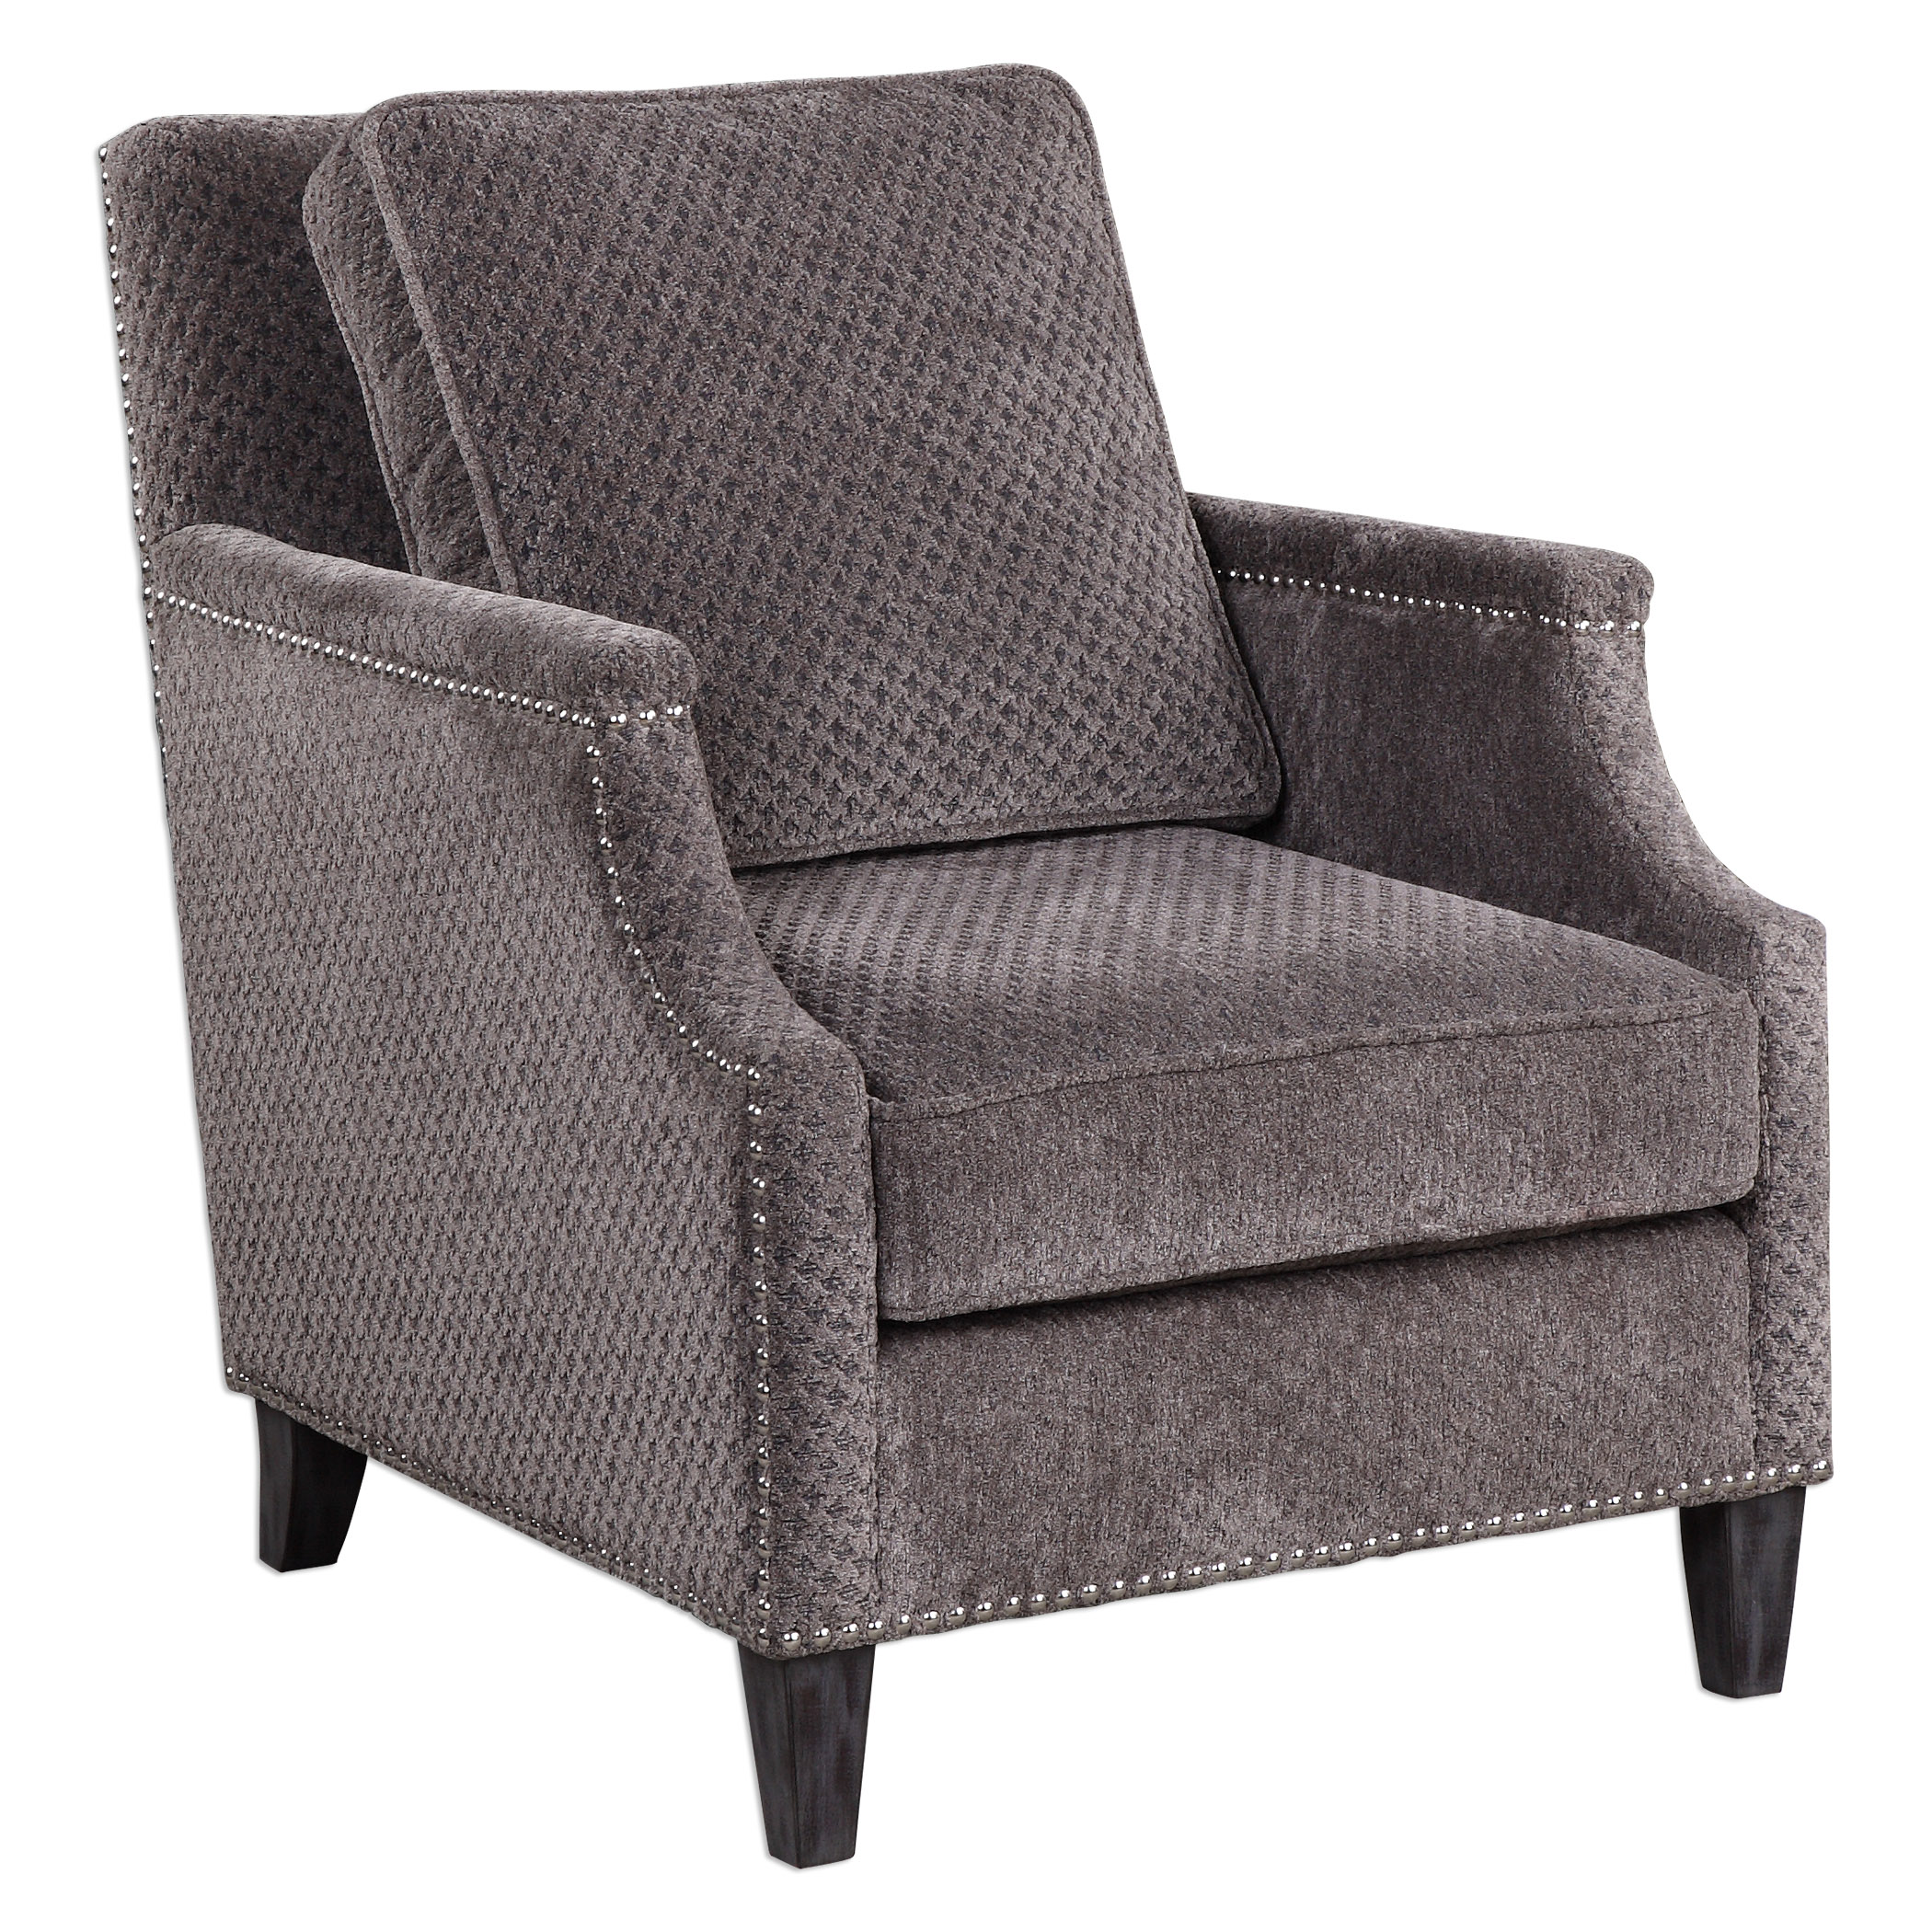 Uttermost Accent Furniture Dallen Pewter Gray Accent Chair - Item Number: 23312